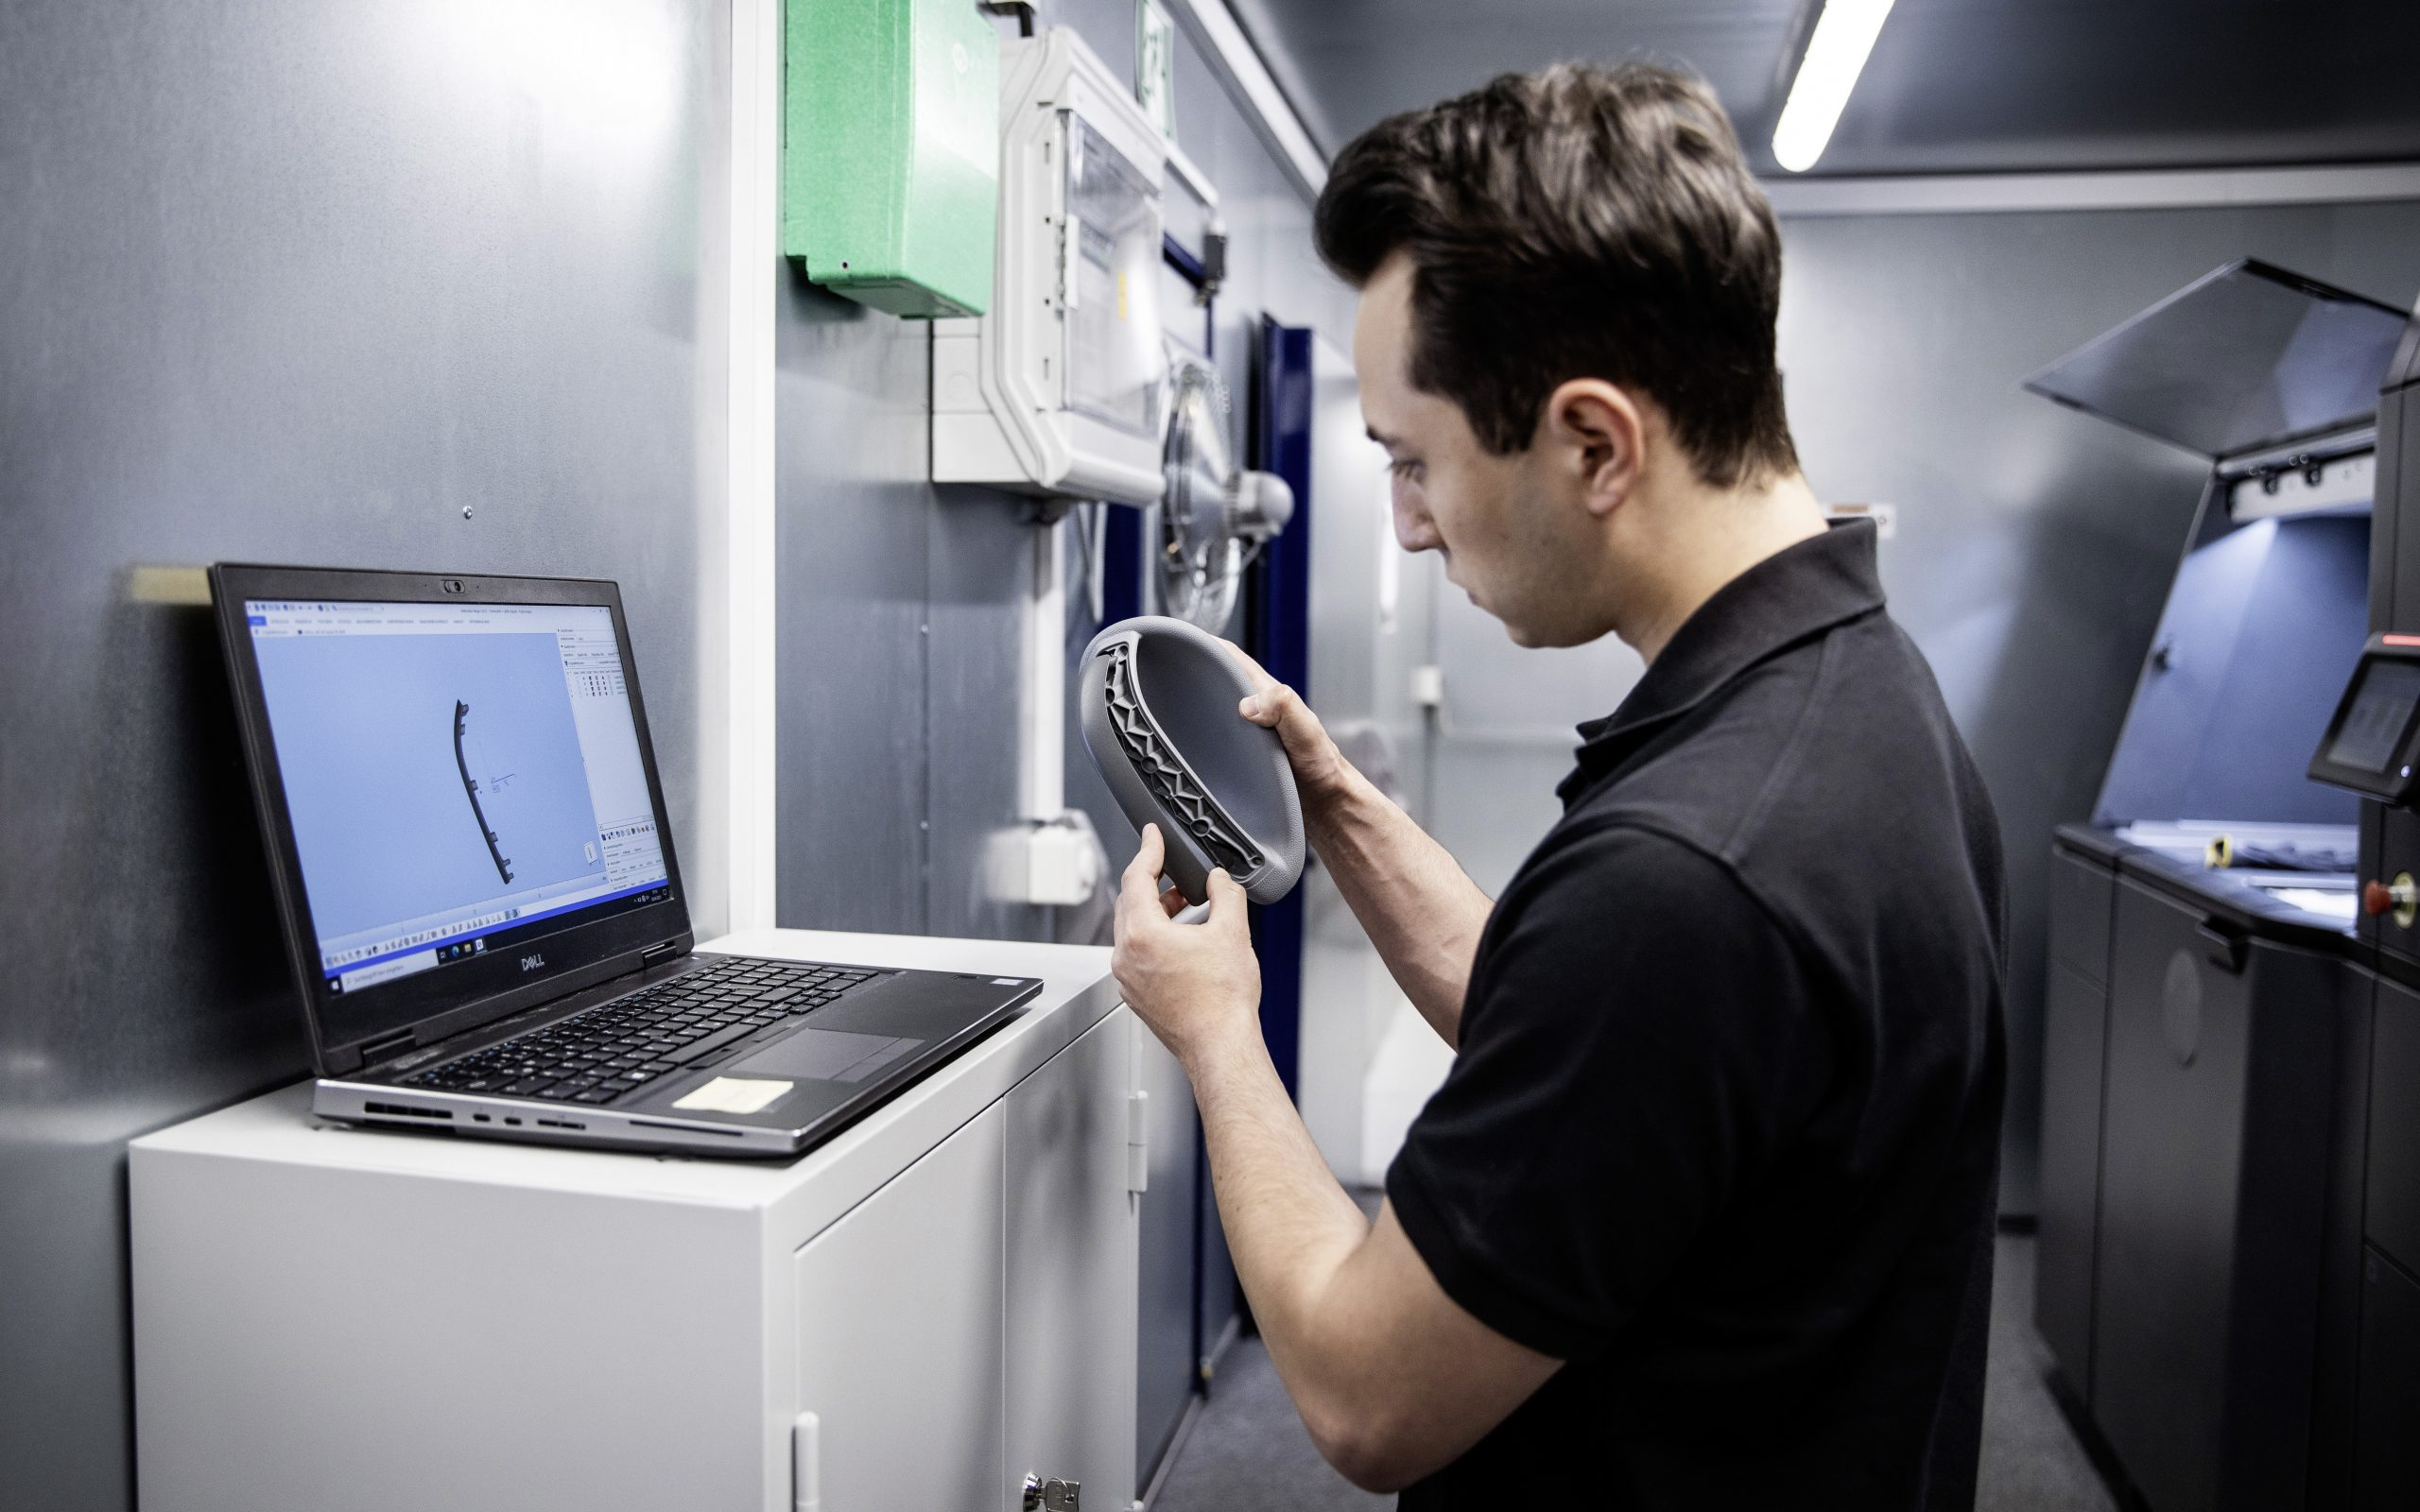 Using 3D printing Daimler Buses can react fast and flexibly to urgent customer requirements, for example when customers order rarely required parts or have special requests. Photo via Daimler.